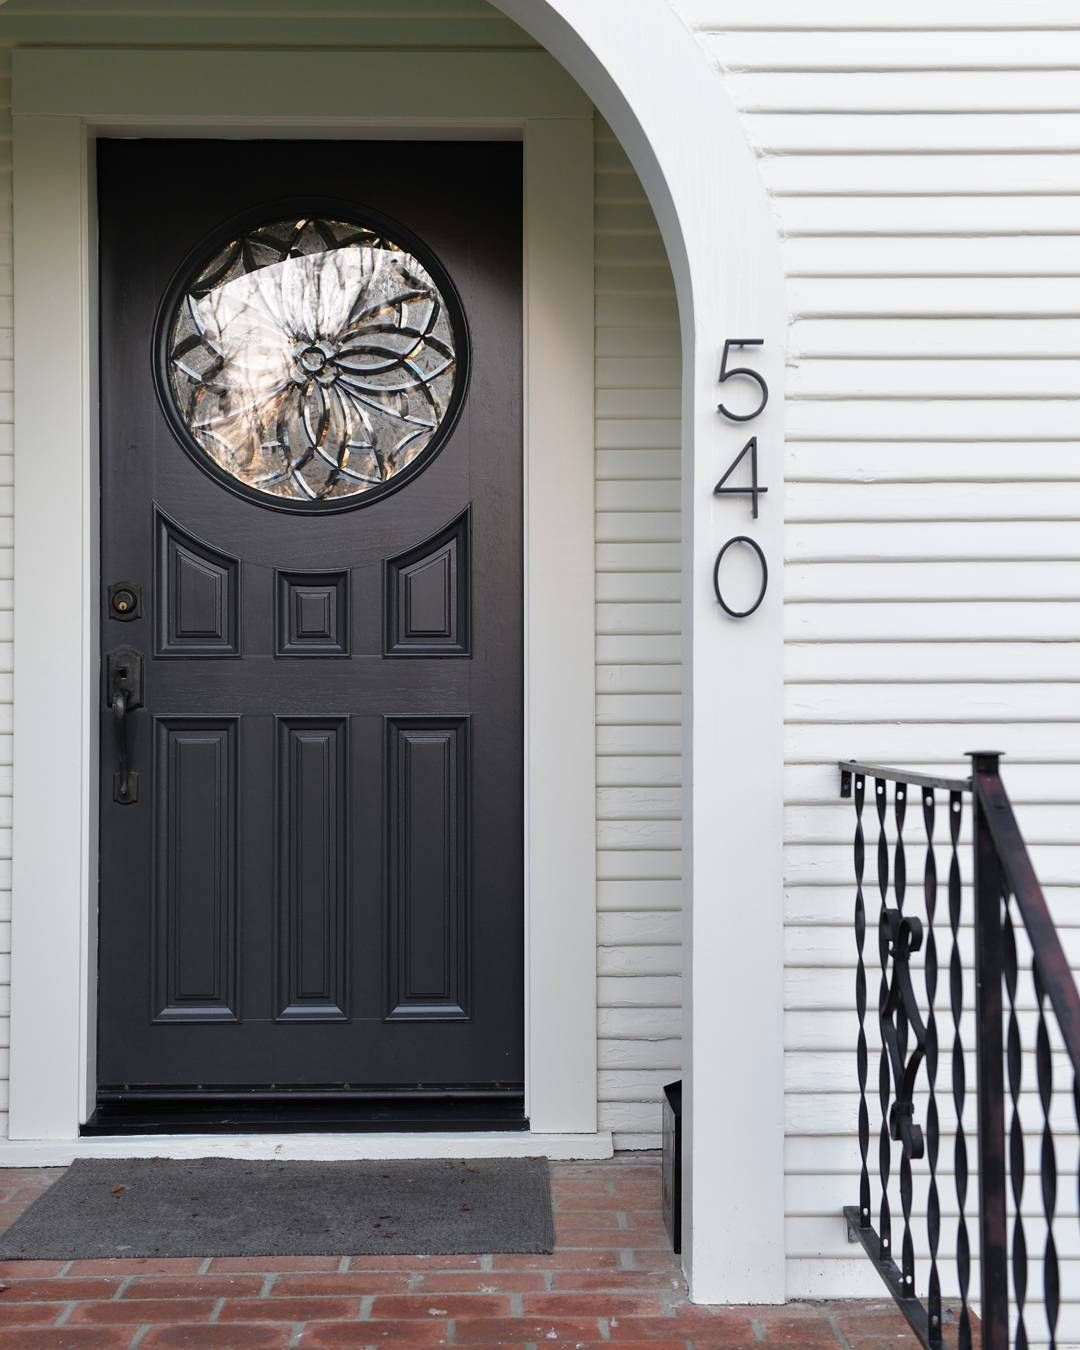 Our New Front Entryway Door In Benjamin Moore Graphite Siding Bm Cloud White